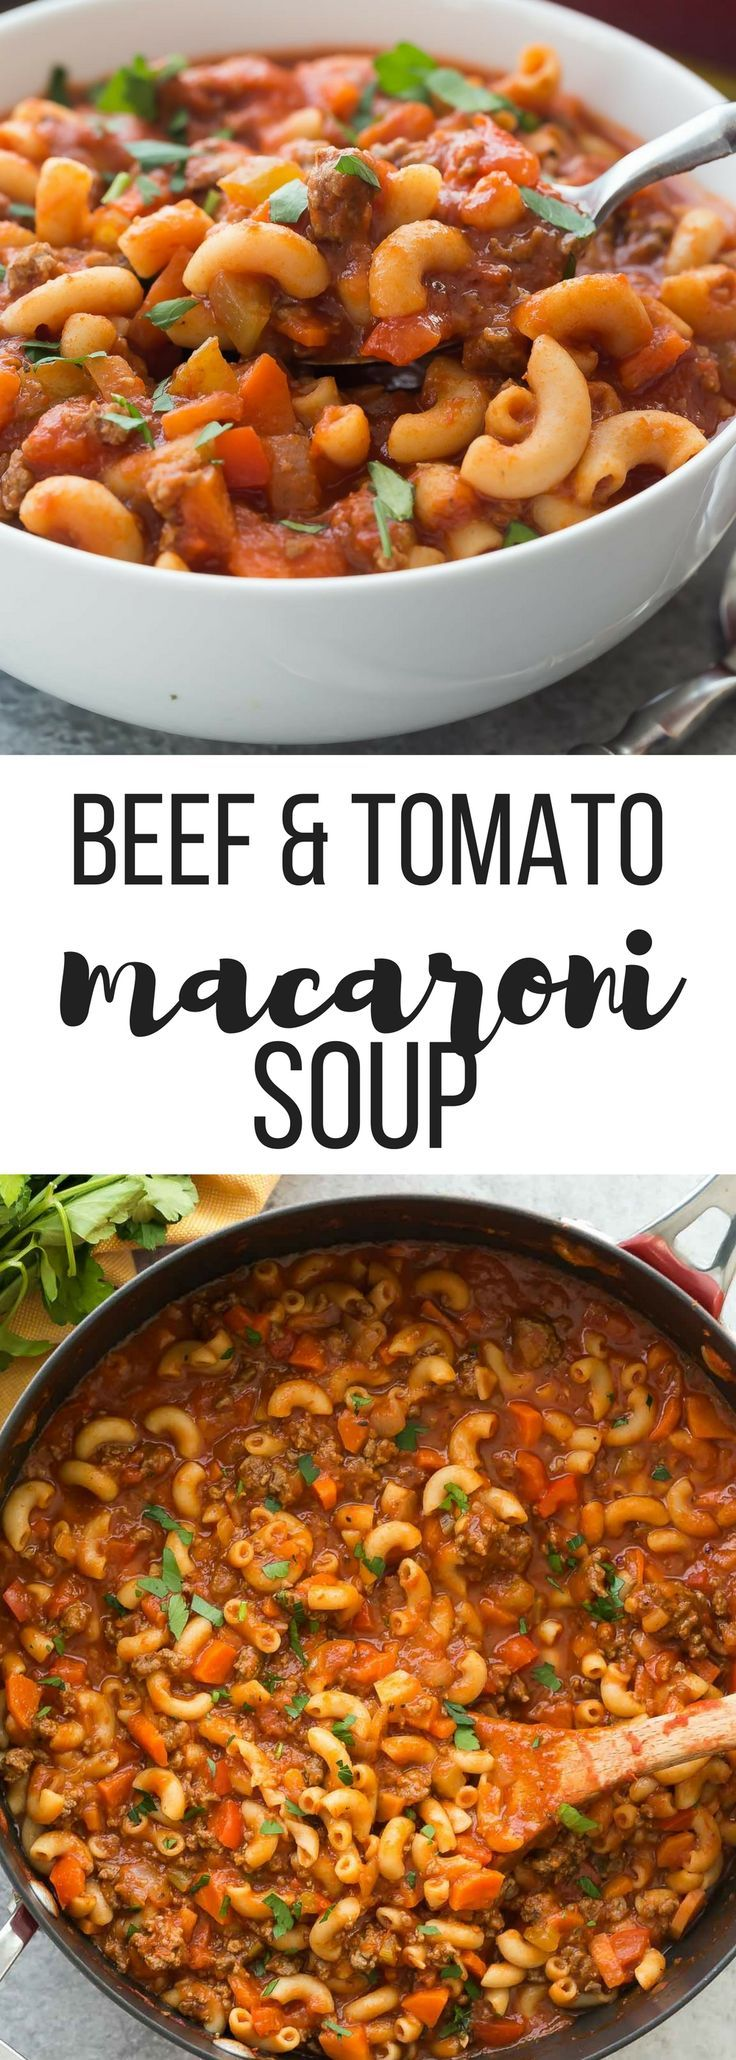 This One Pot Beef and Tomato Macaroni Soup is a classic! It's a healthy, one pot meal made in 30 minutes or less and loaded with vegetables. Includes how to recipe video   dinner recipe   easy soup recipe   healthy recipe   30 minute meal   one pot meal